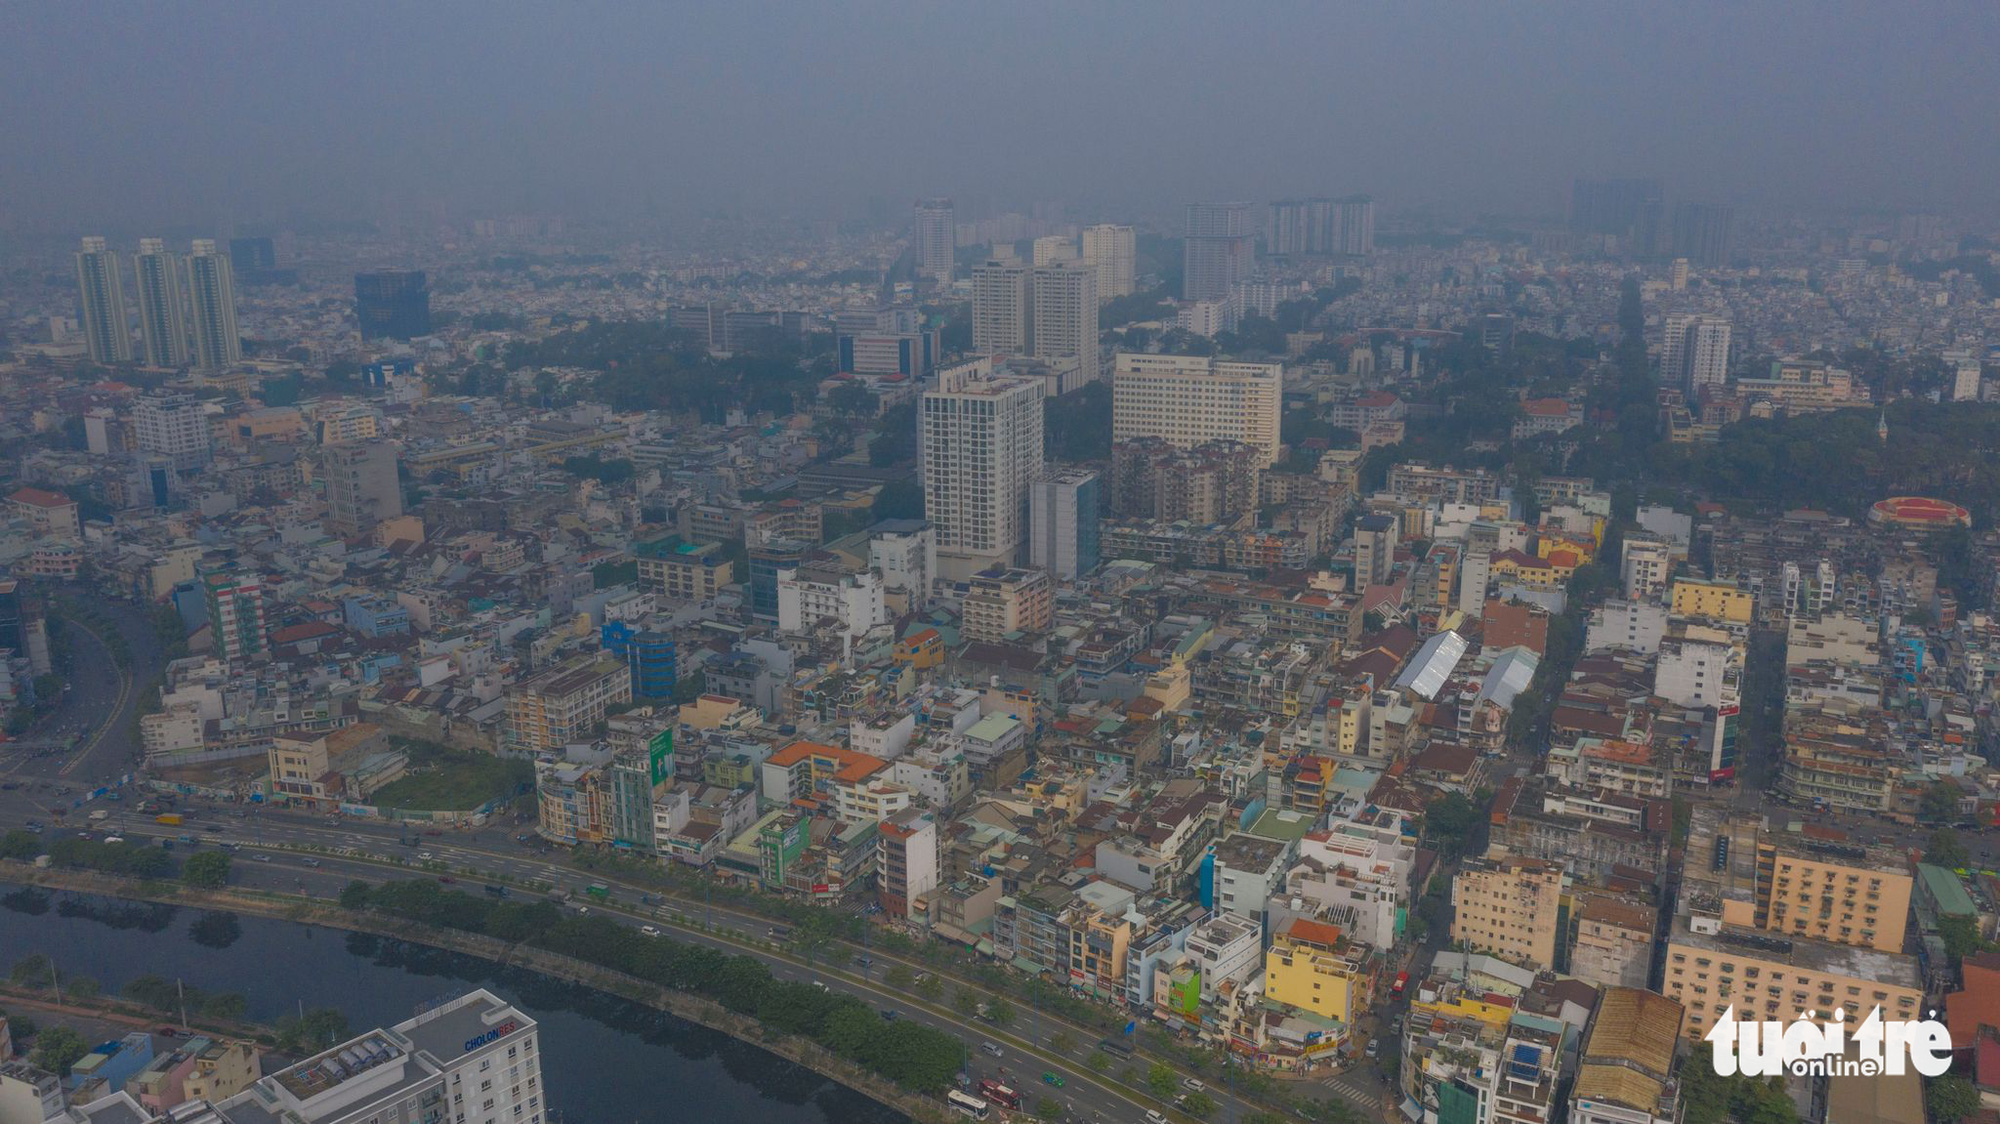 Unseasonal rain results in smoggy sky in Ho Chi Minh City: expert